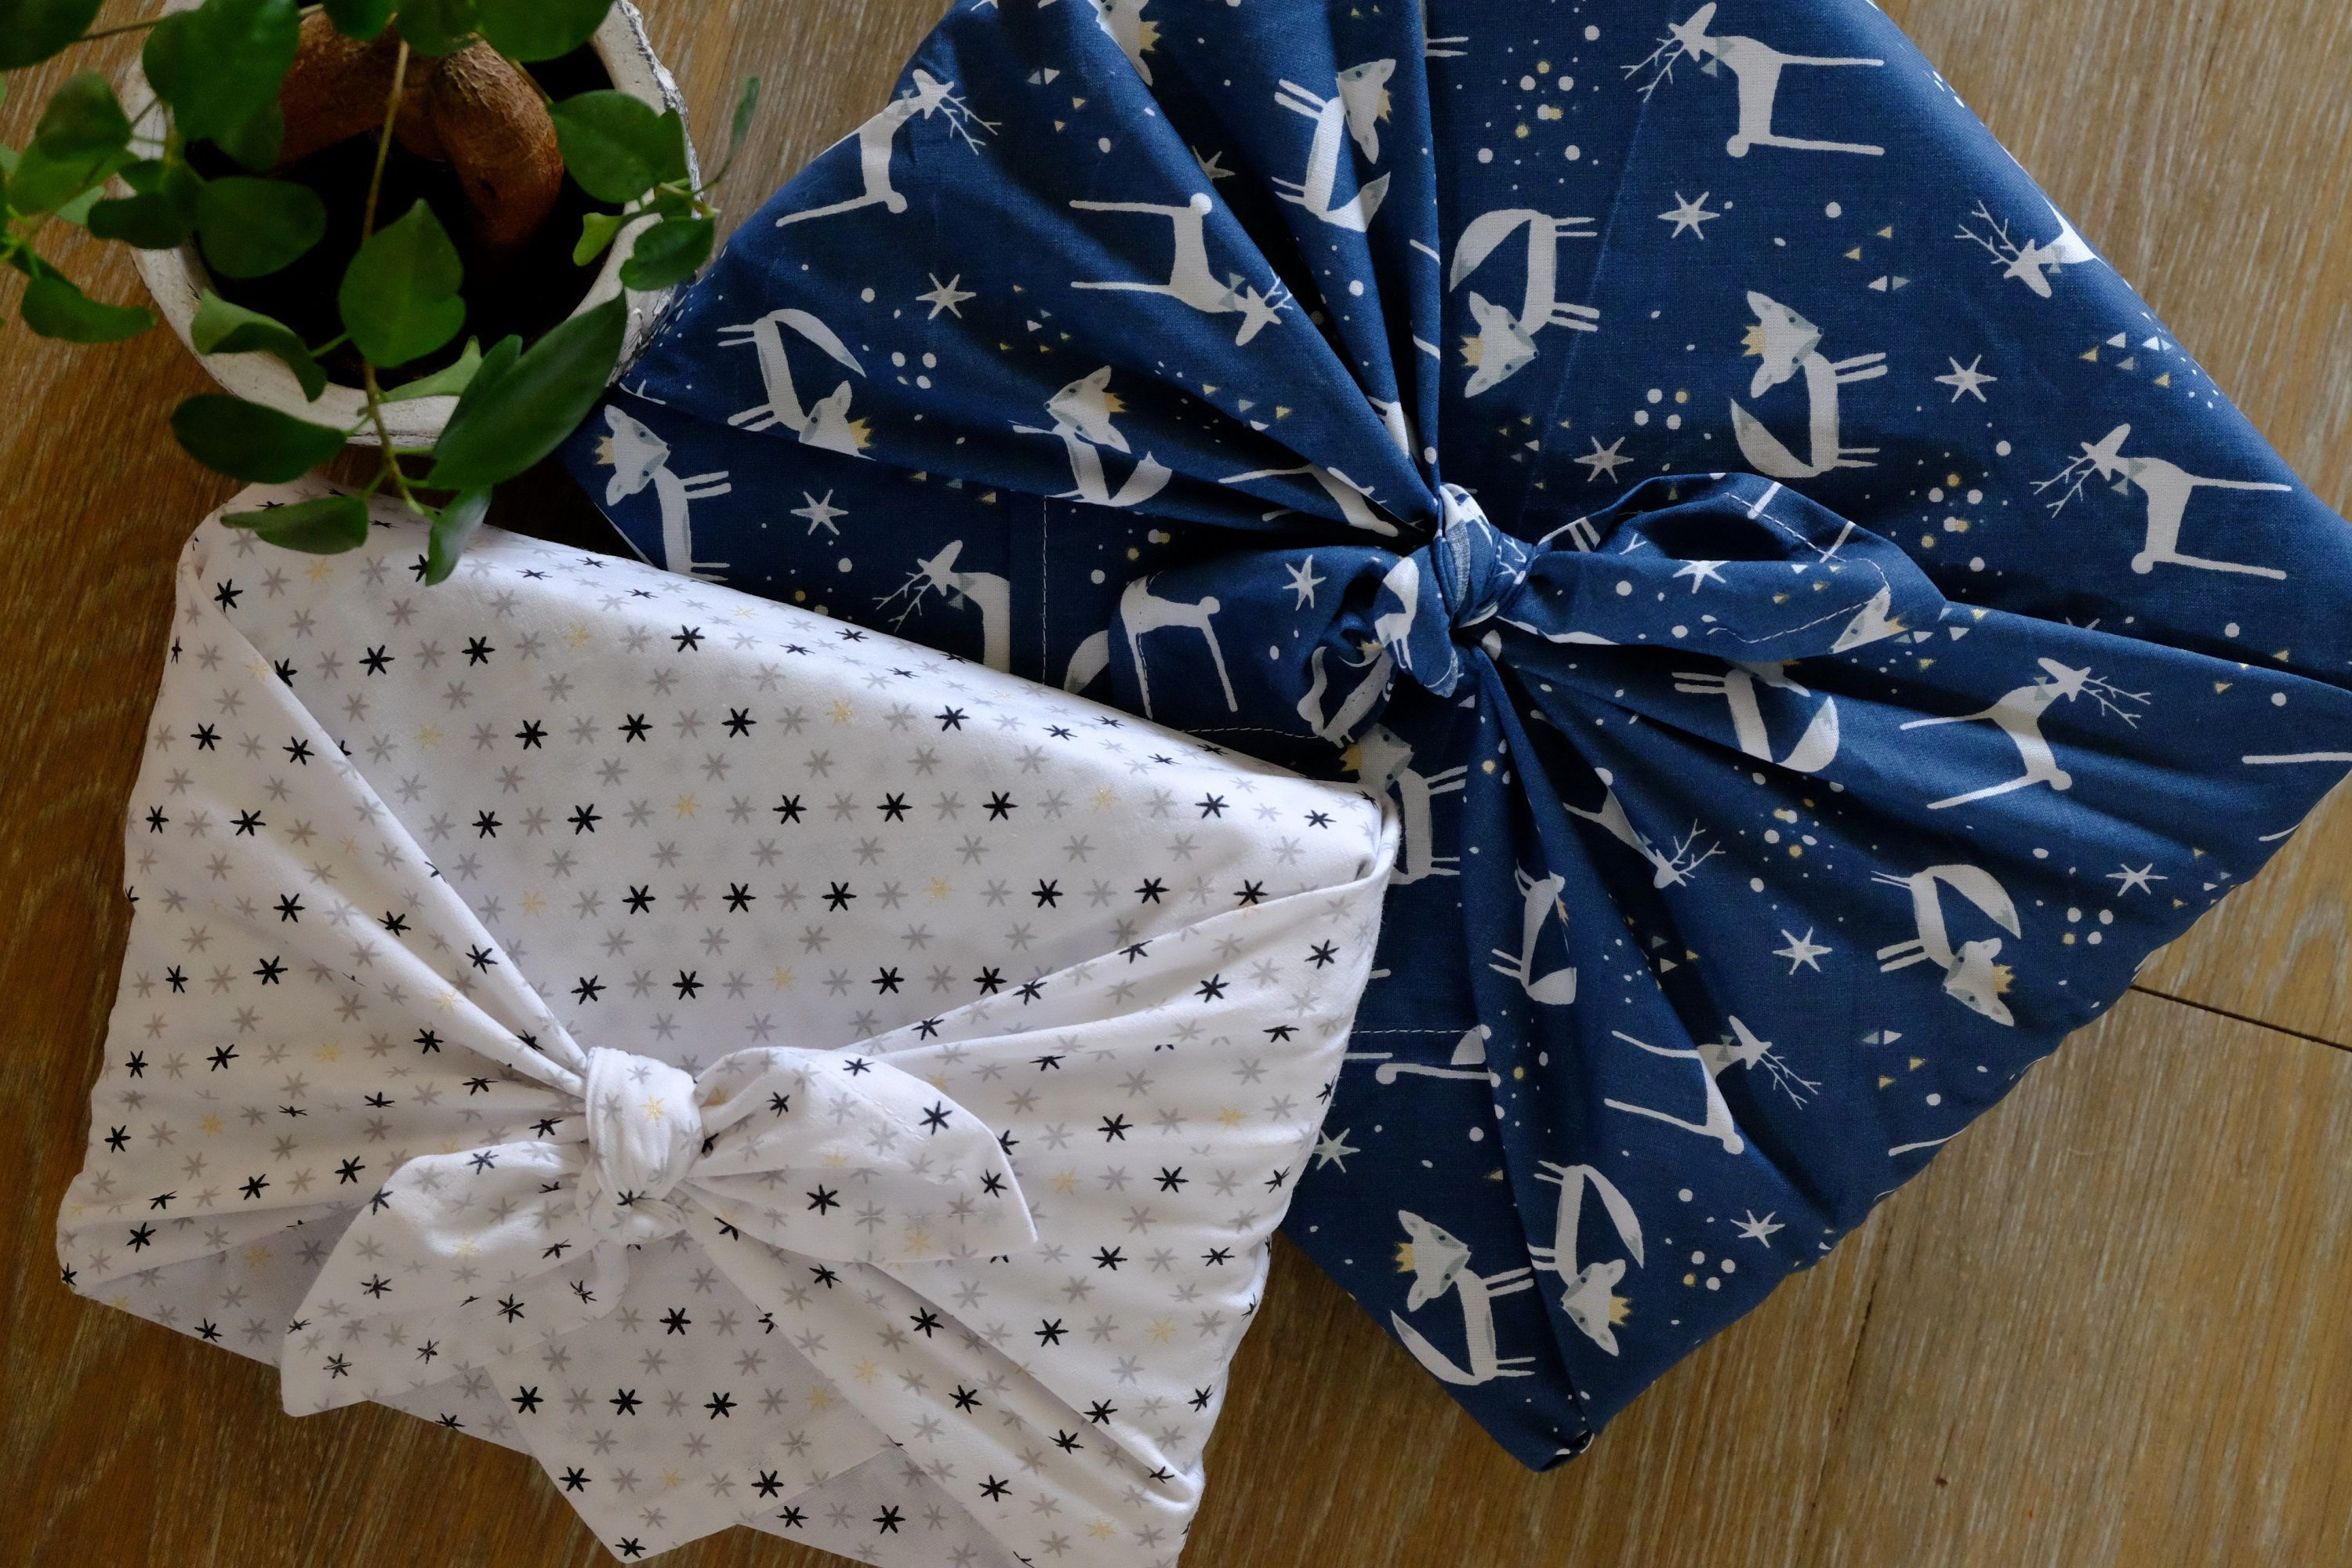 FUROSHIKI - 58 x 58 cm or 68x68 cm / Animals and stars / Ecological packaging - Zero waste - Oeko Tex Class 100 - / Gift packaging